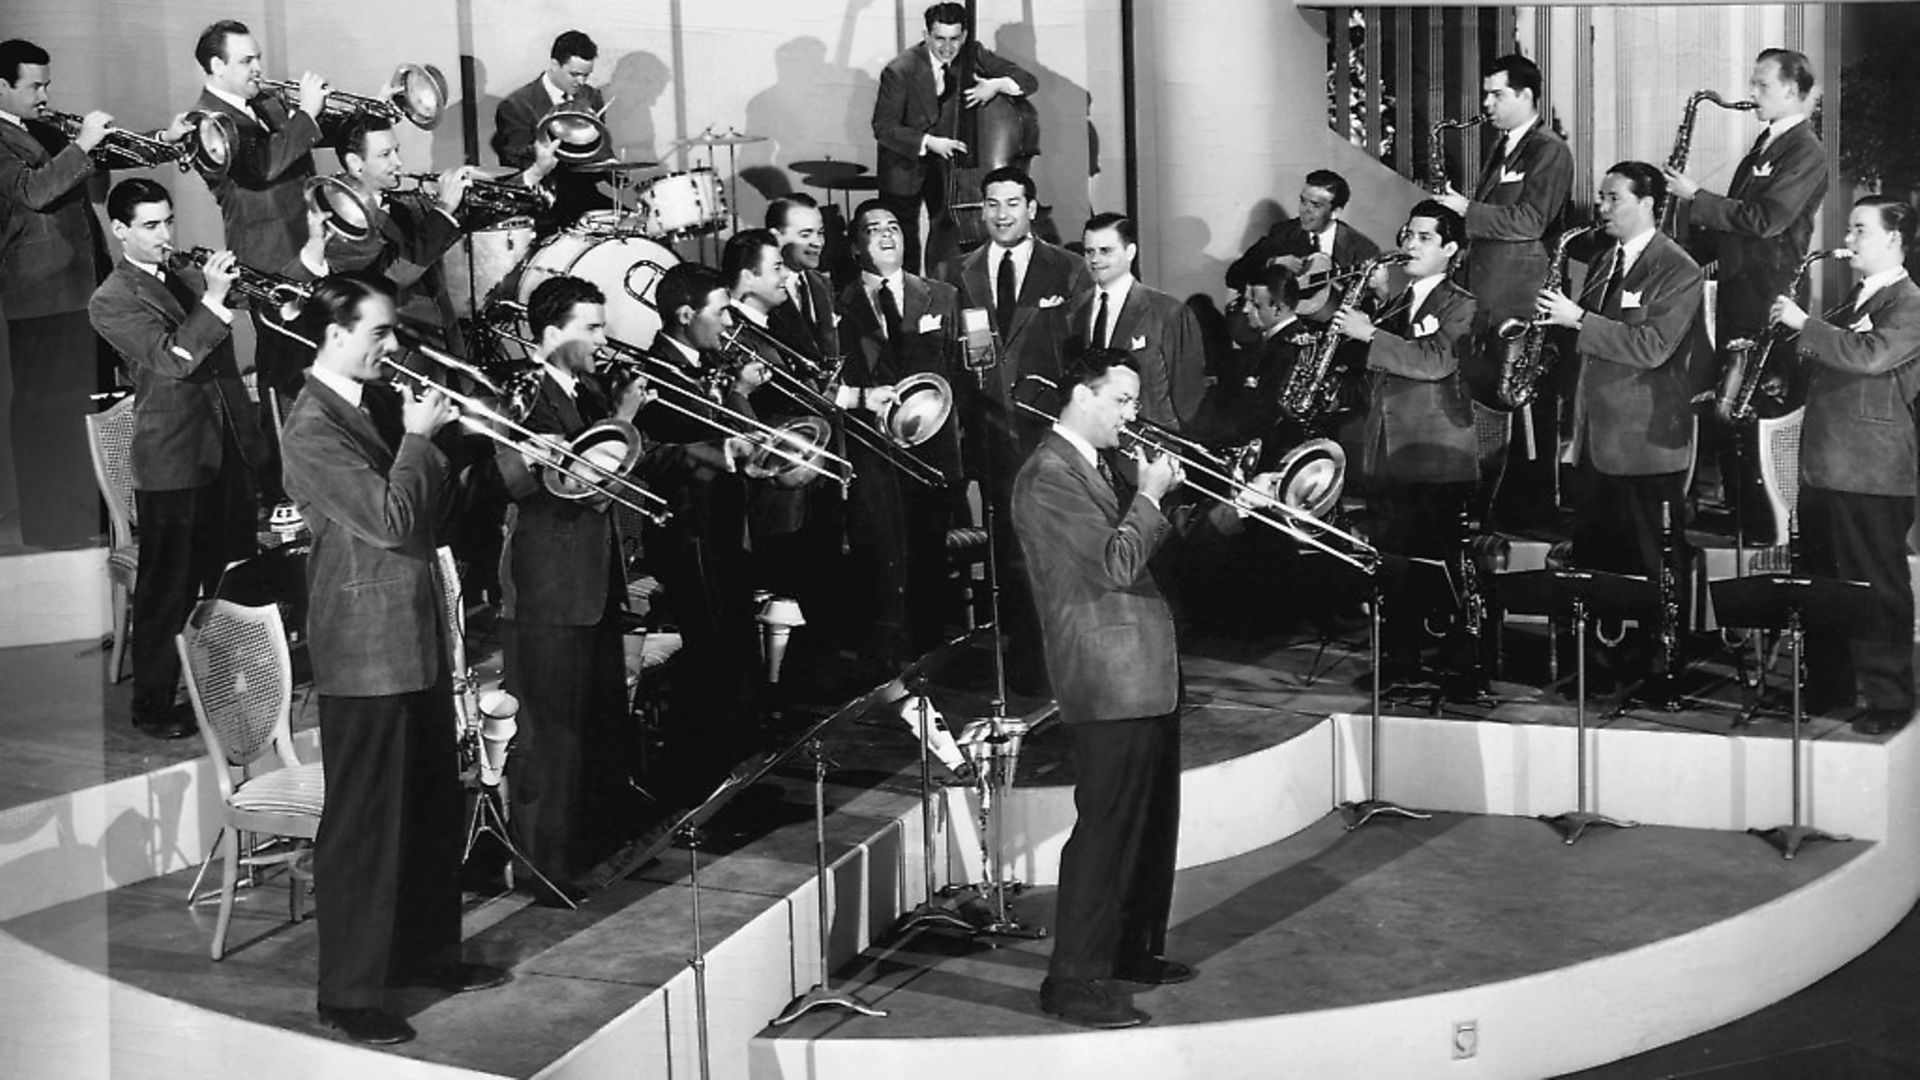 The Glenn Miller Orchestra in Sun Valley Serenade, 1940. Photo Getty Images - Credit: Bettmann Archive